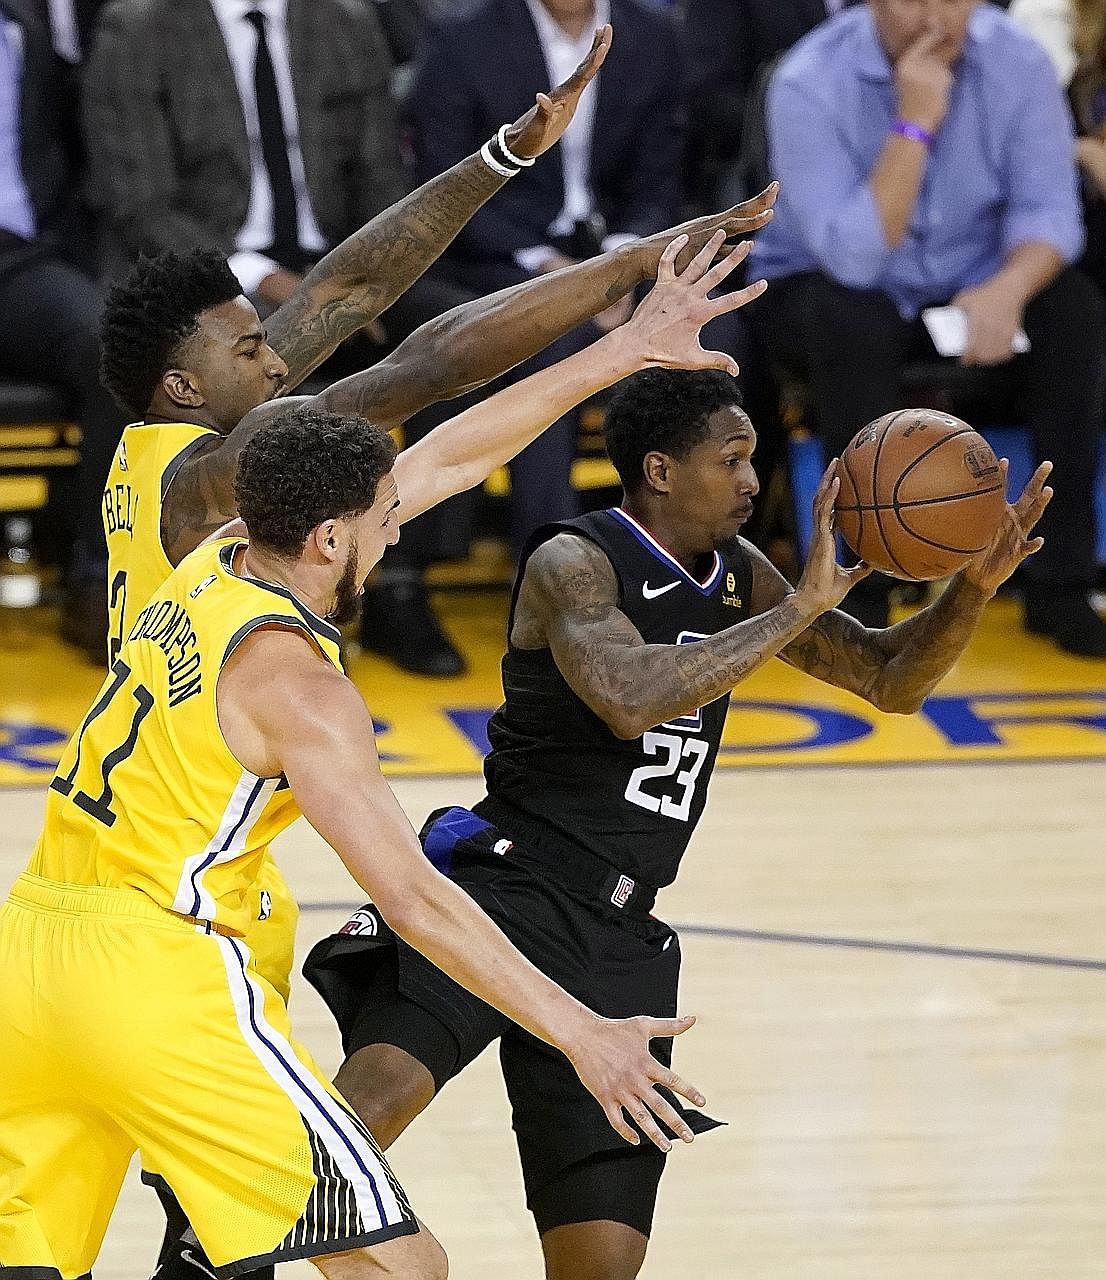 Clippers guard Lou Williams making a pass as Warriors guard Klay Thompson (centre) and forward Jordan Bell defend in Sunday's Game 2 of the NBA Western Conference first-round play-offs in Oakland. The visitors scored 85 points in the second half to b